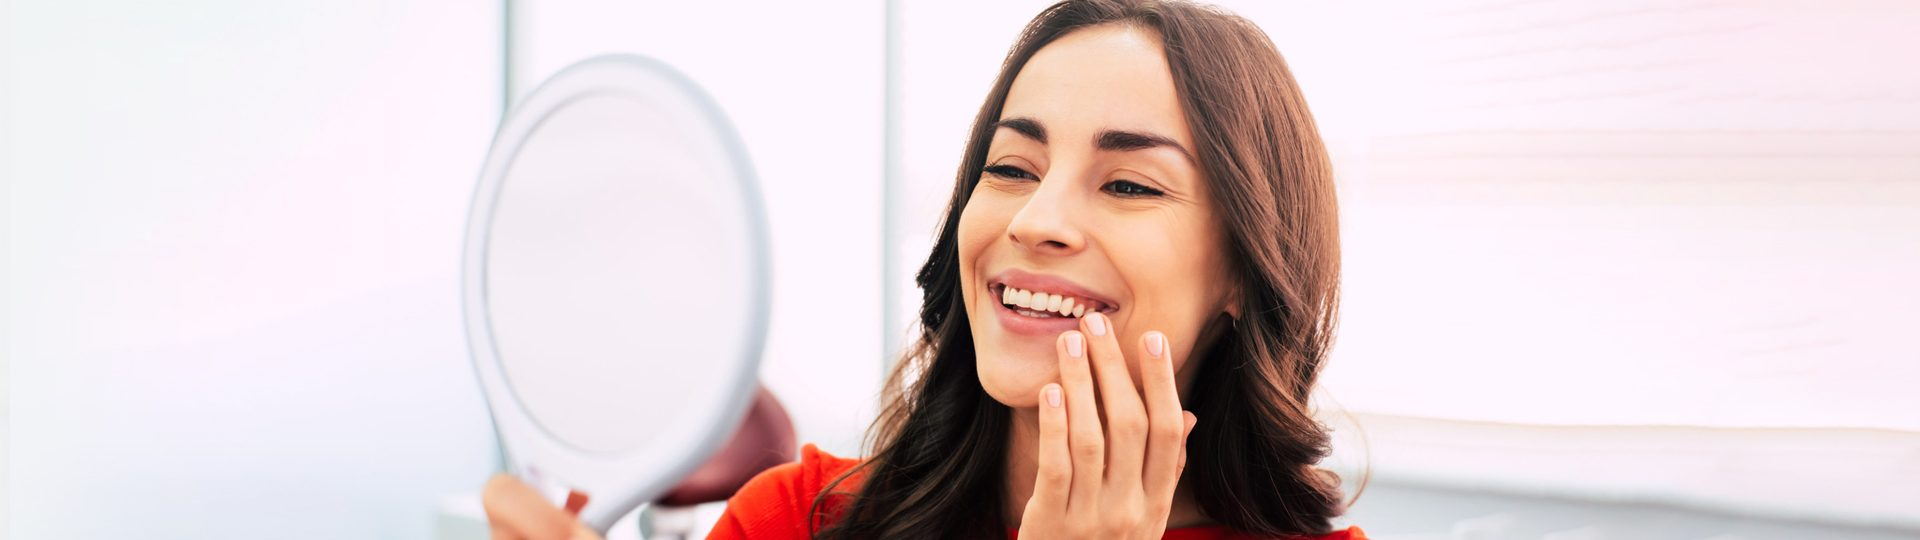 Get a Smile Makeover through Cosmetic Dentistry at Wheatland Dental